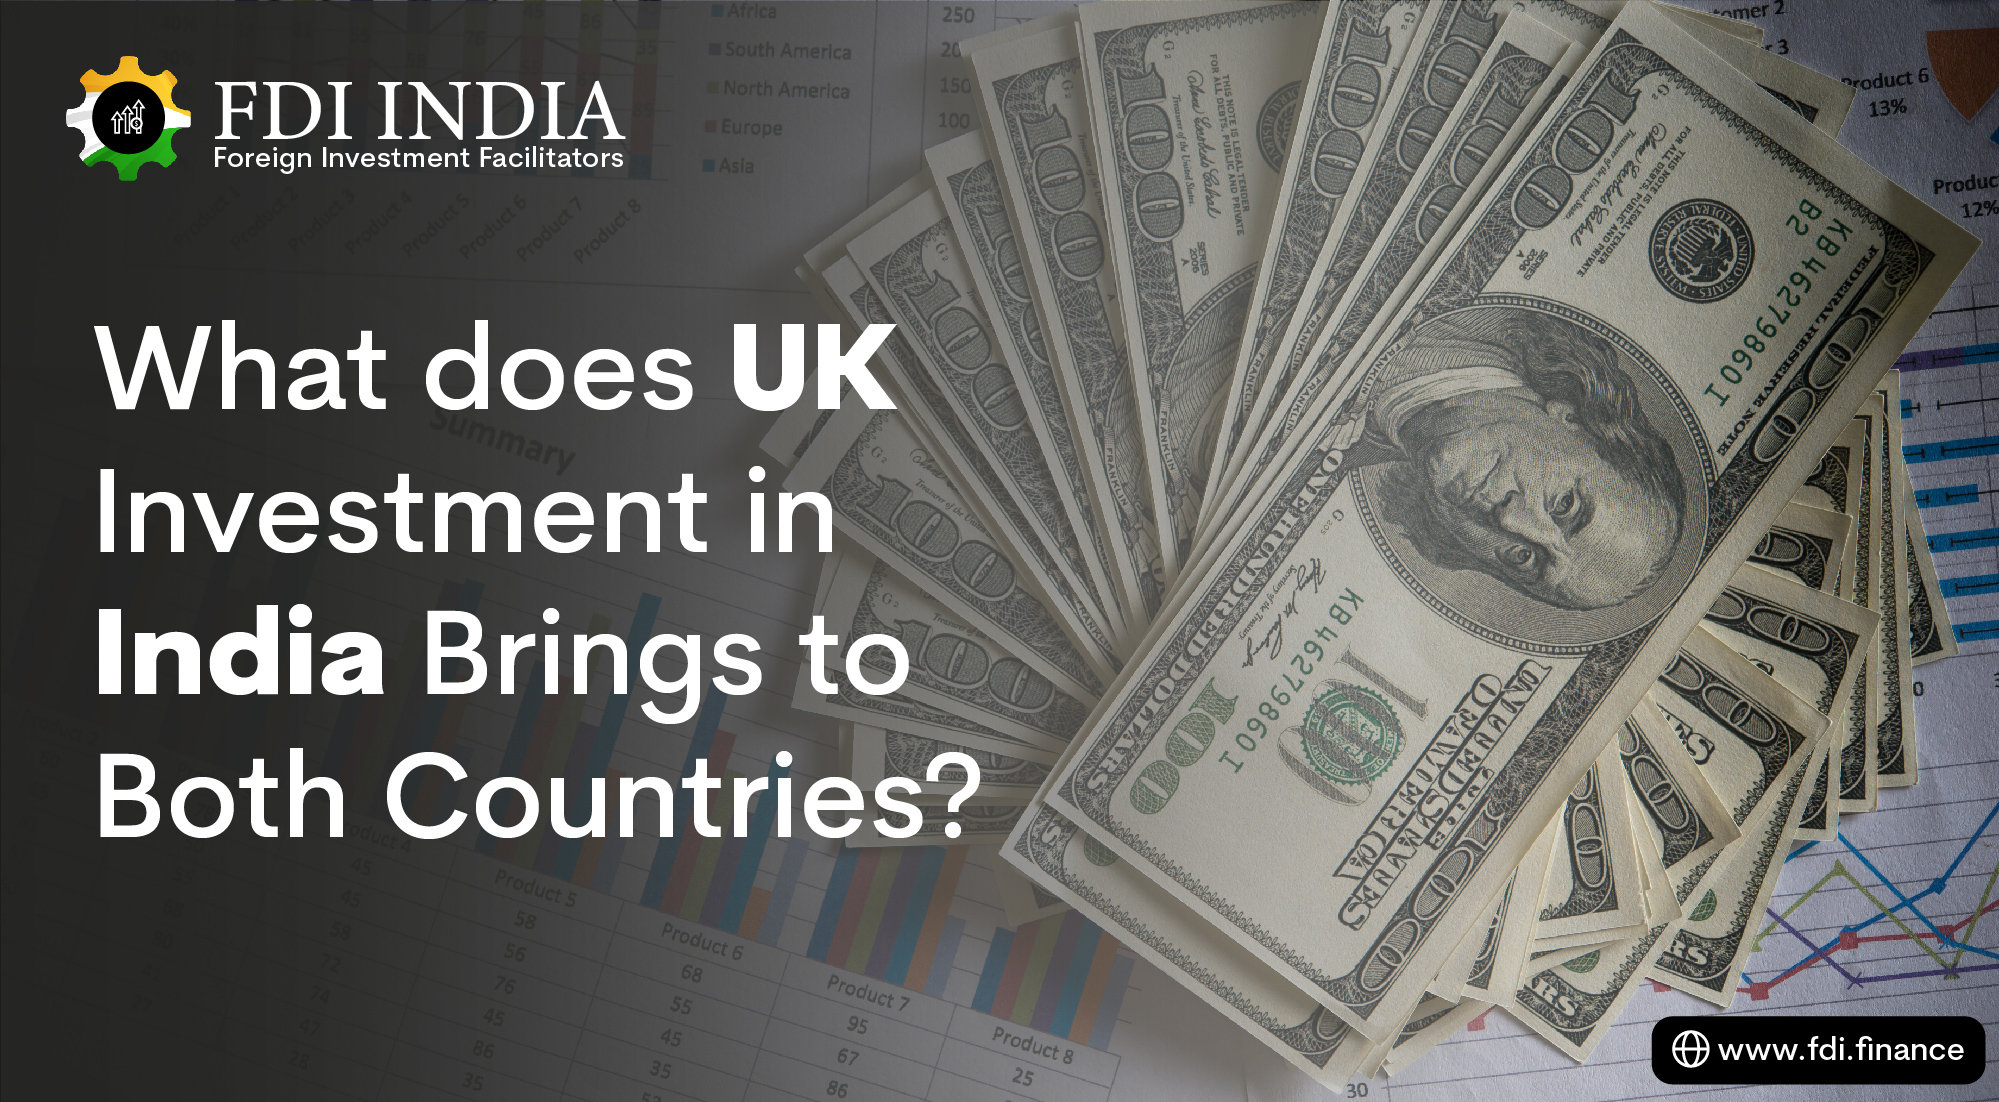 What Does UK Investment in India Brings to Both Countries?